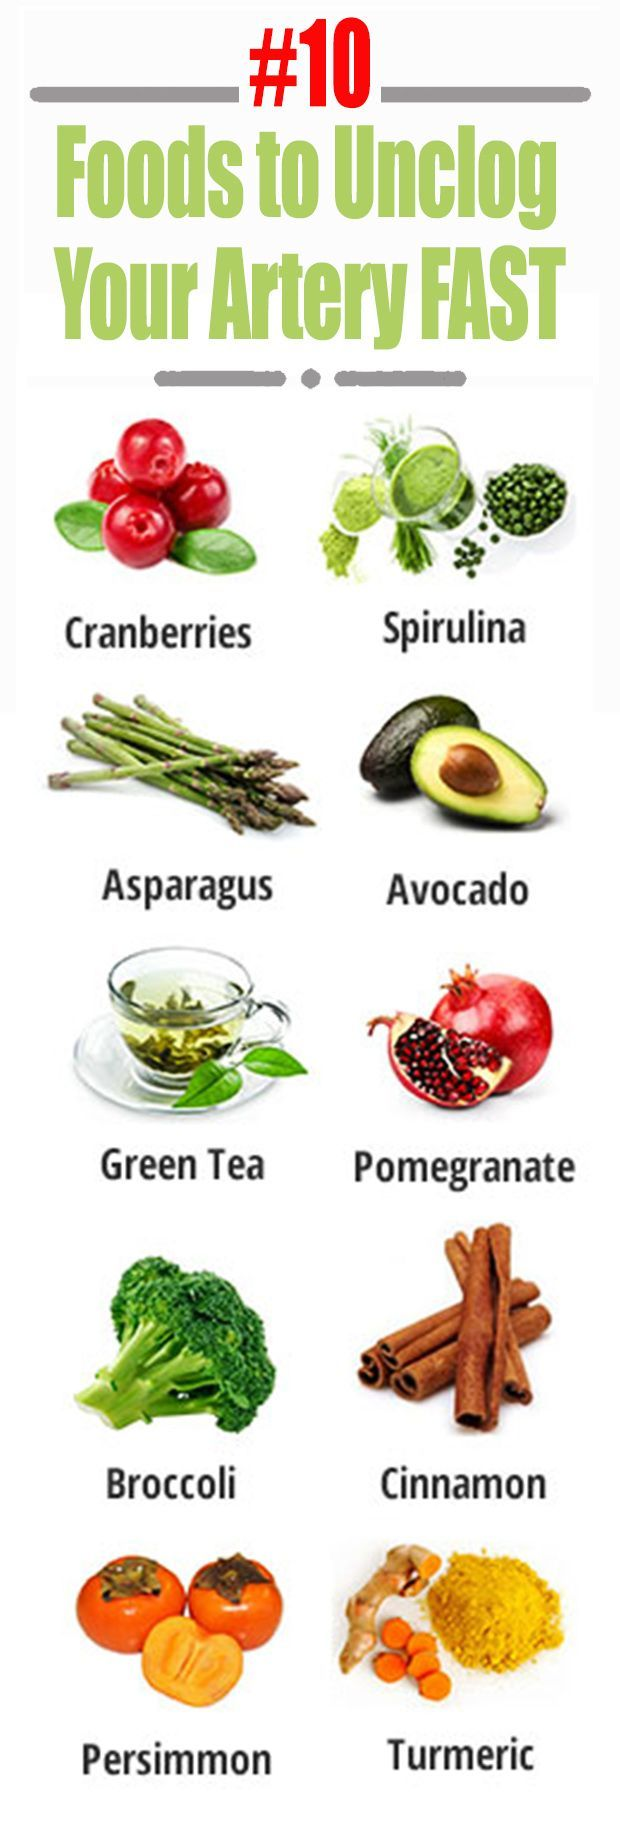 Top 10 Foods To Unclog Your Artery Fast Healthy Society Unclog Artery Artery Cleansing Fo Holistic Health Remedies Natural Health Remedies Cleanse Recipes